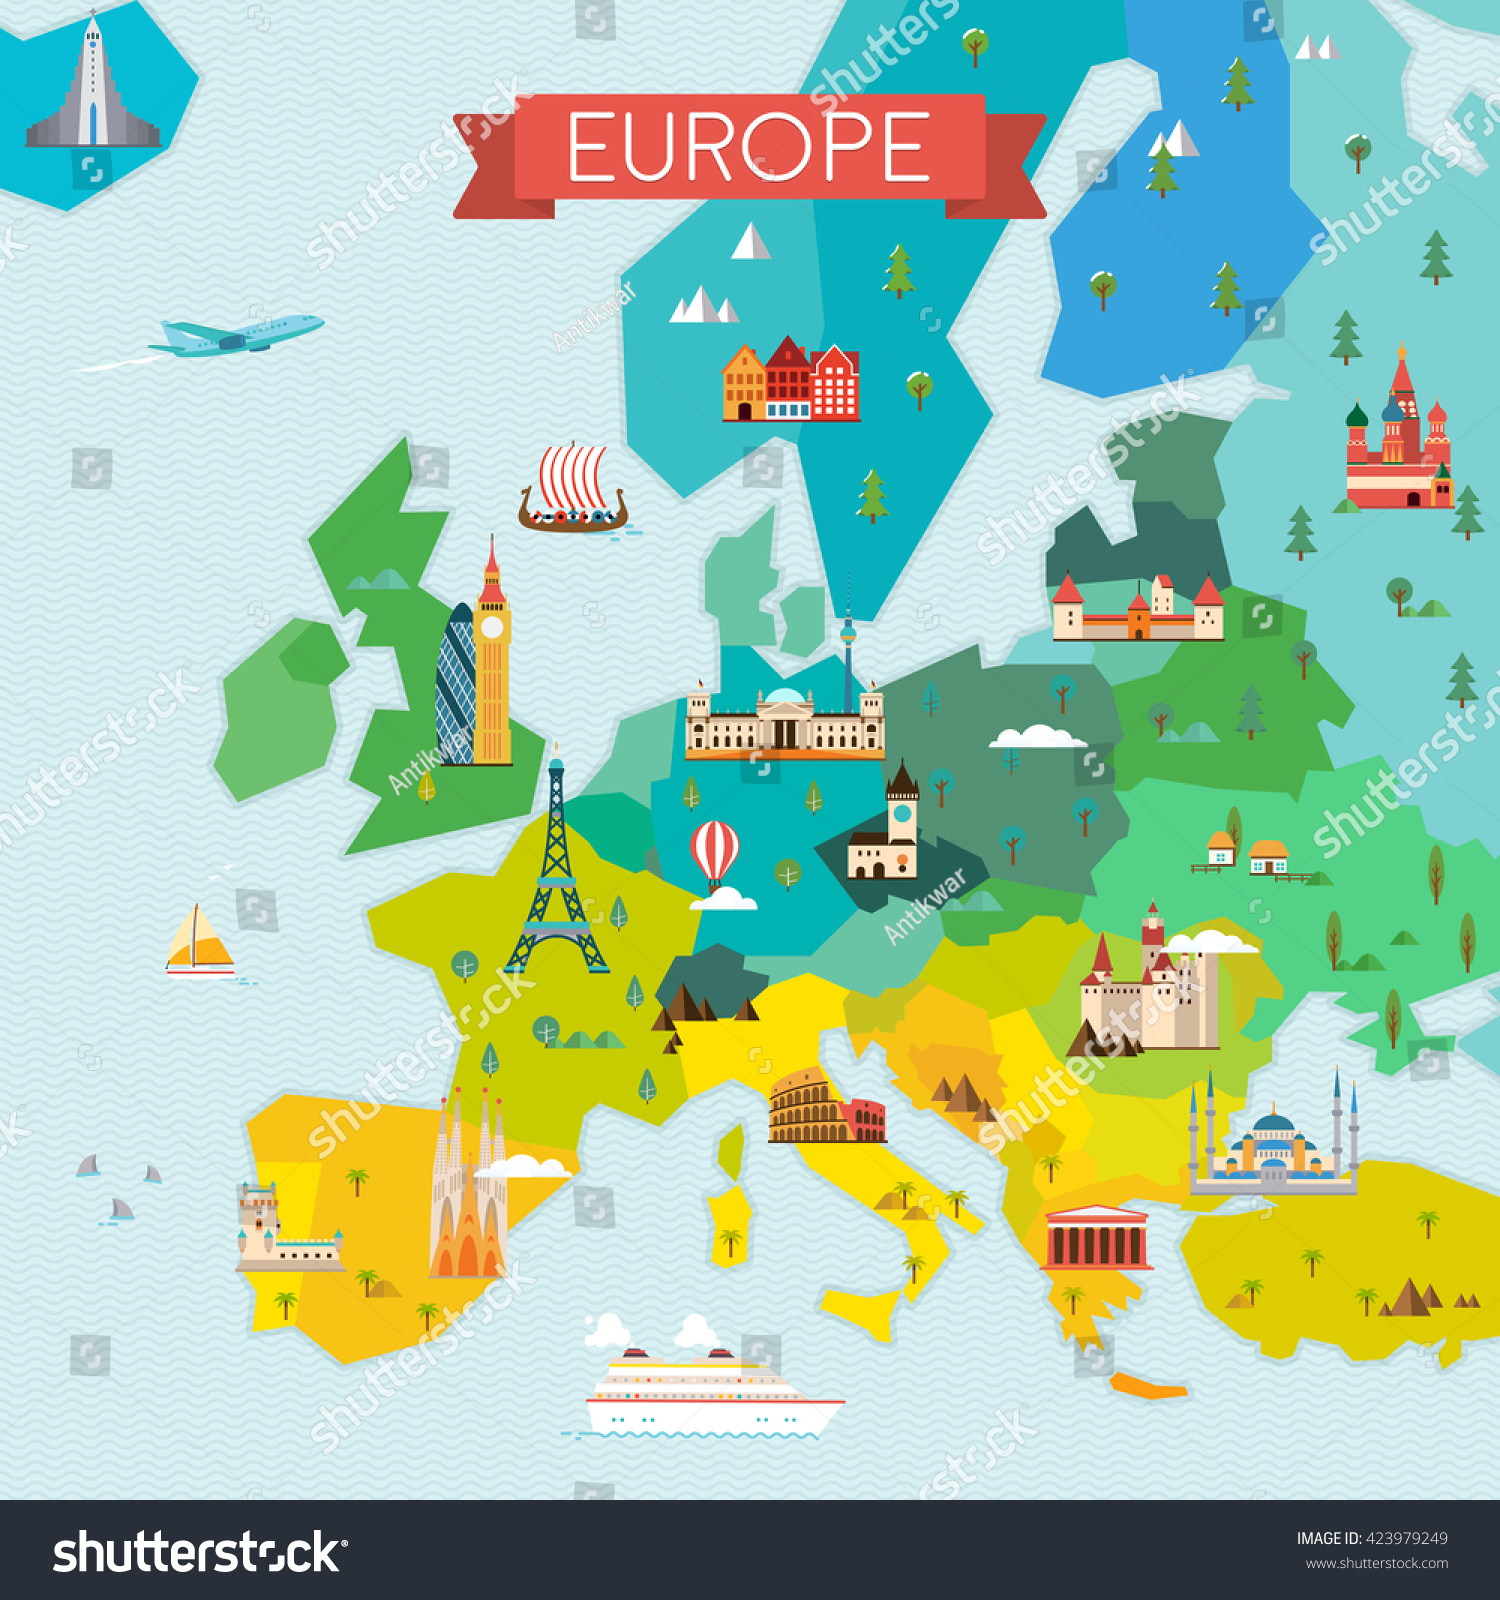 Map Europe Travel Tourism Background Vector Vector 423979249 – Travel Maps Europe